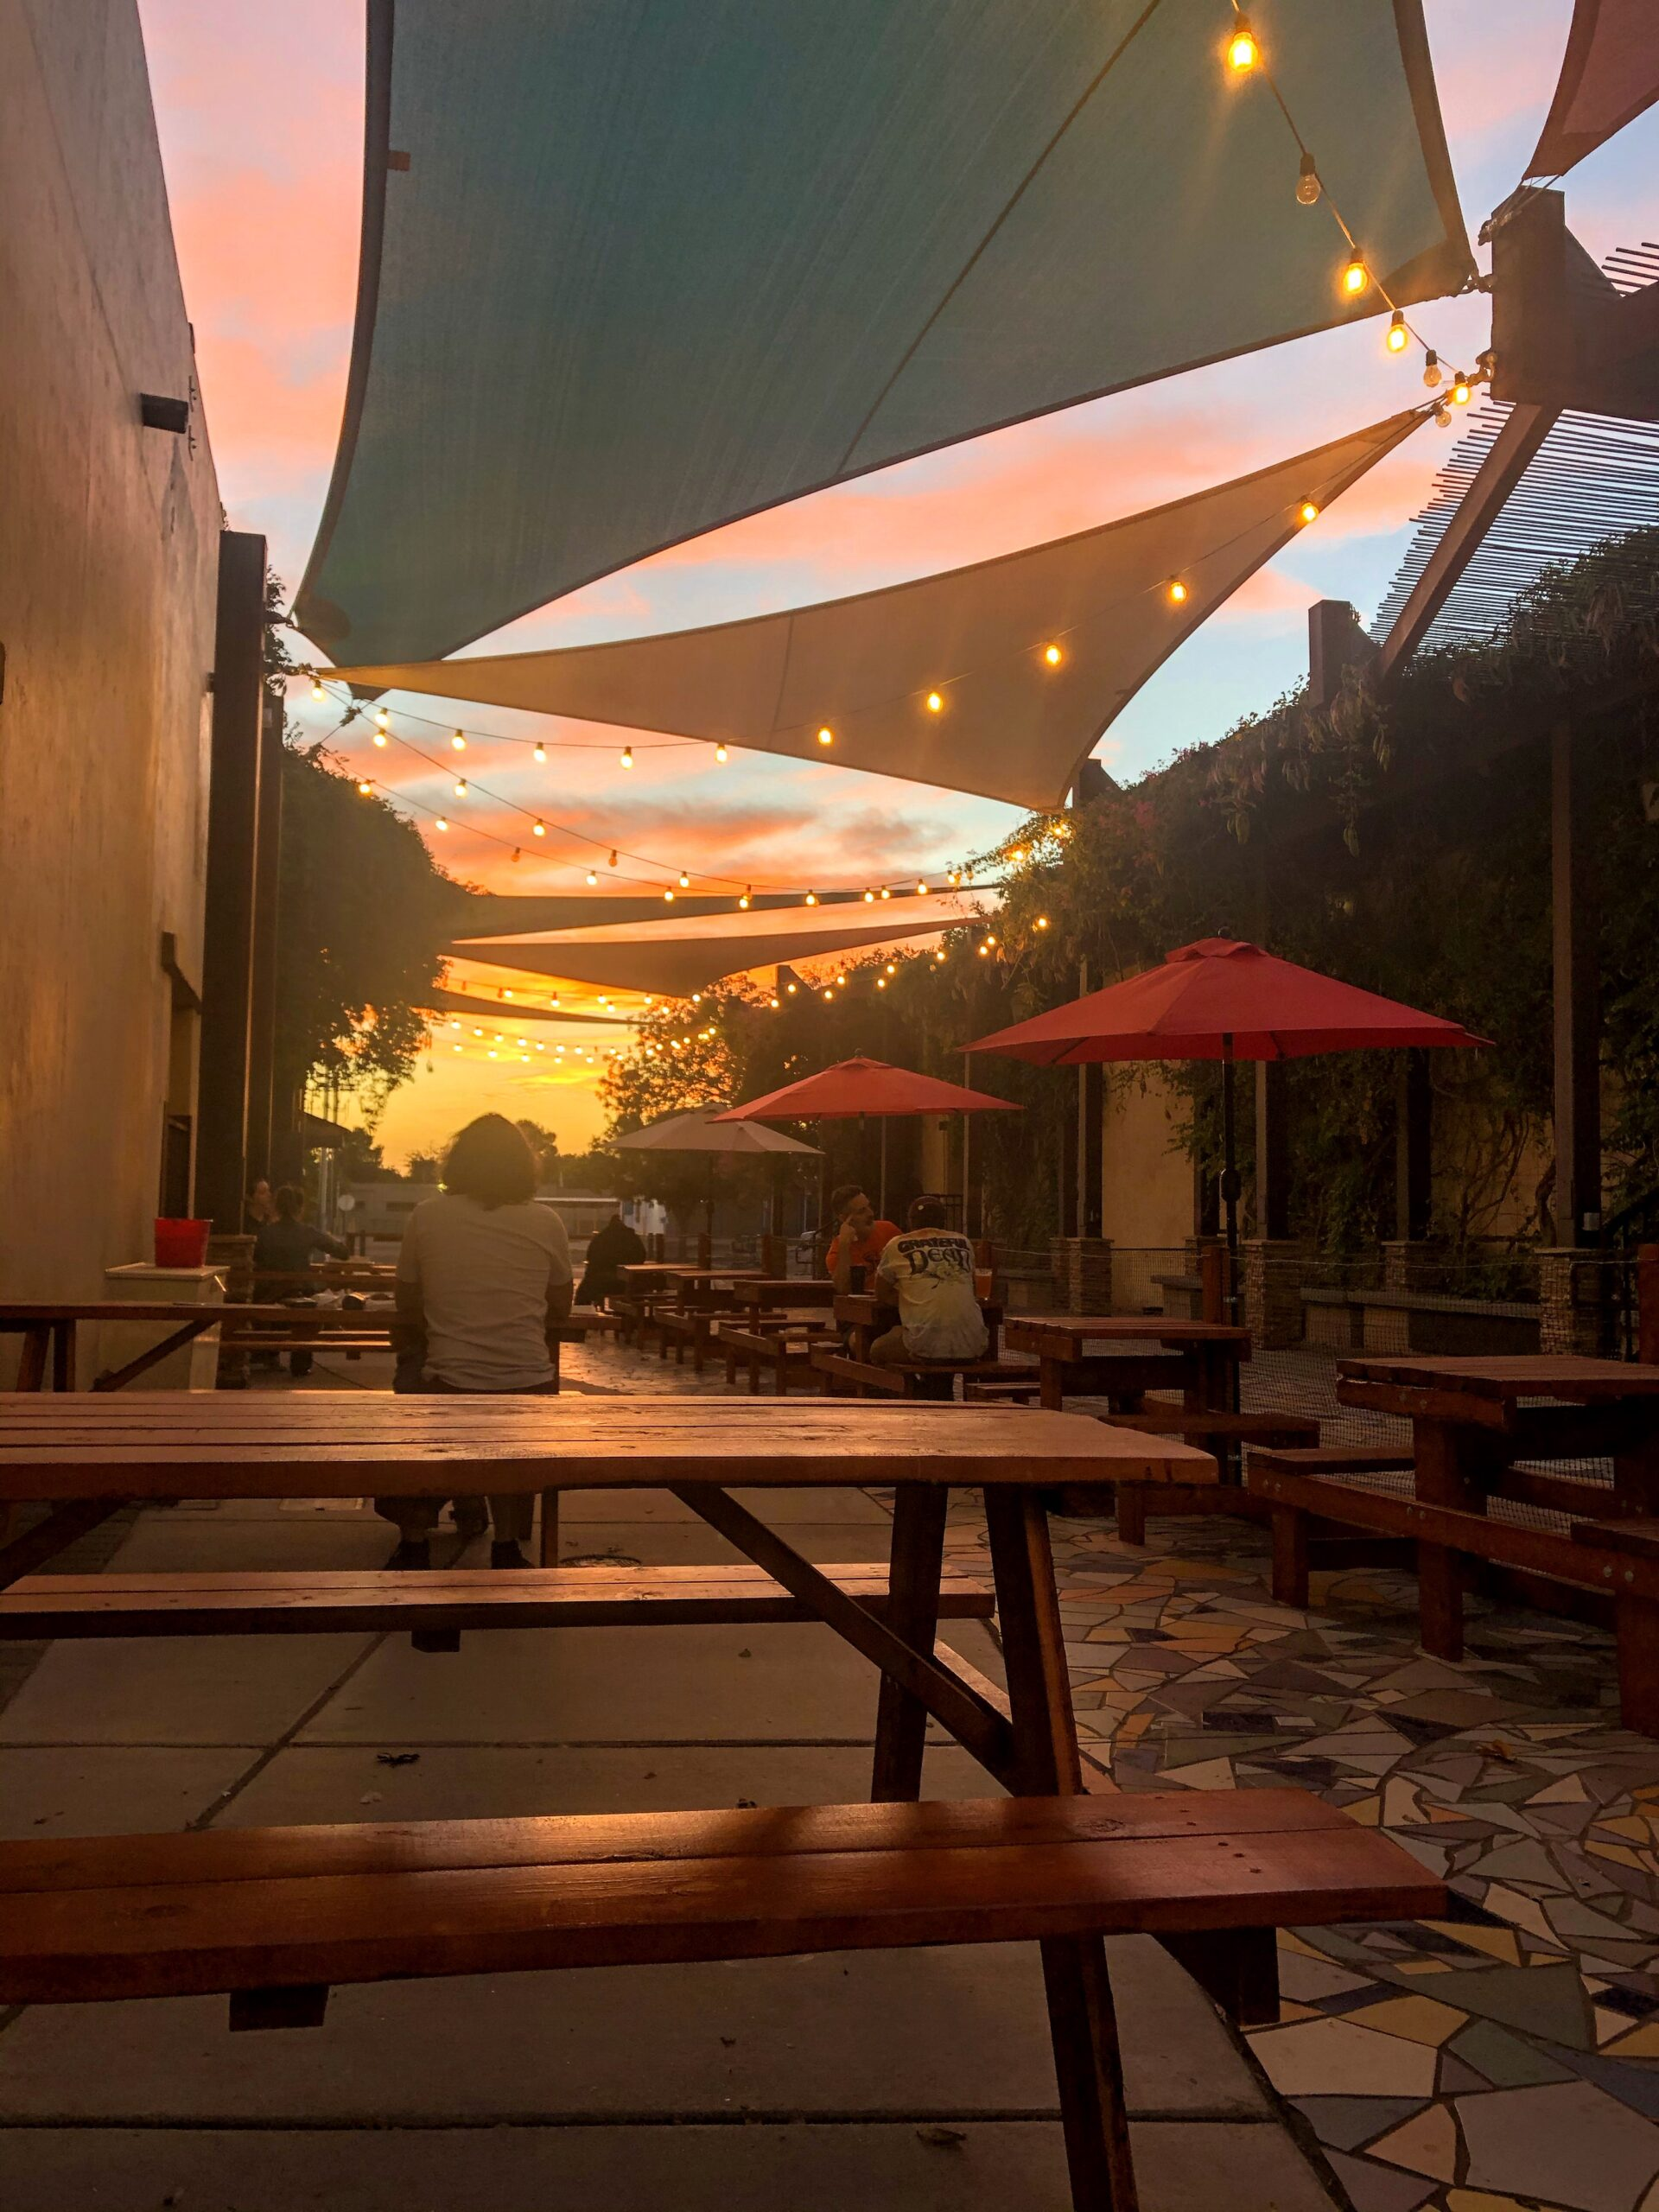 sunset on the patio at Icebox's Boneyard Cantina location in downtown Las Cruces